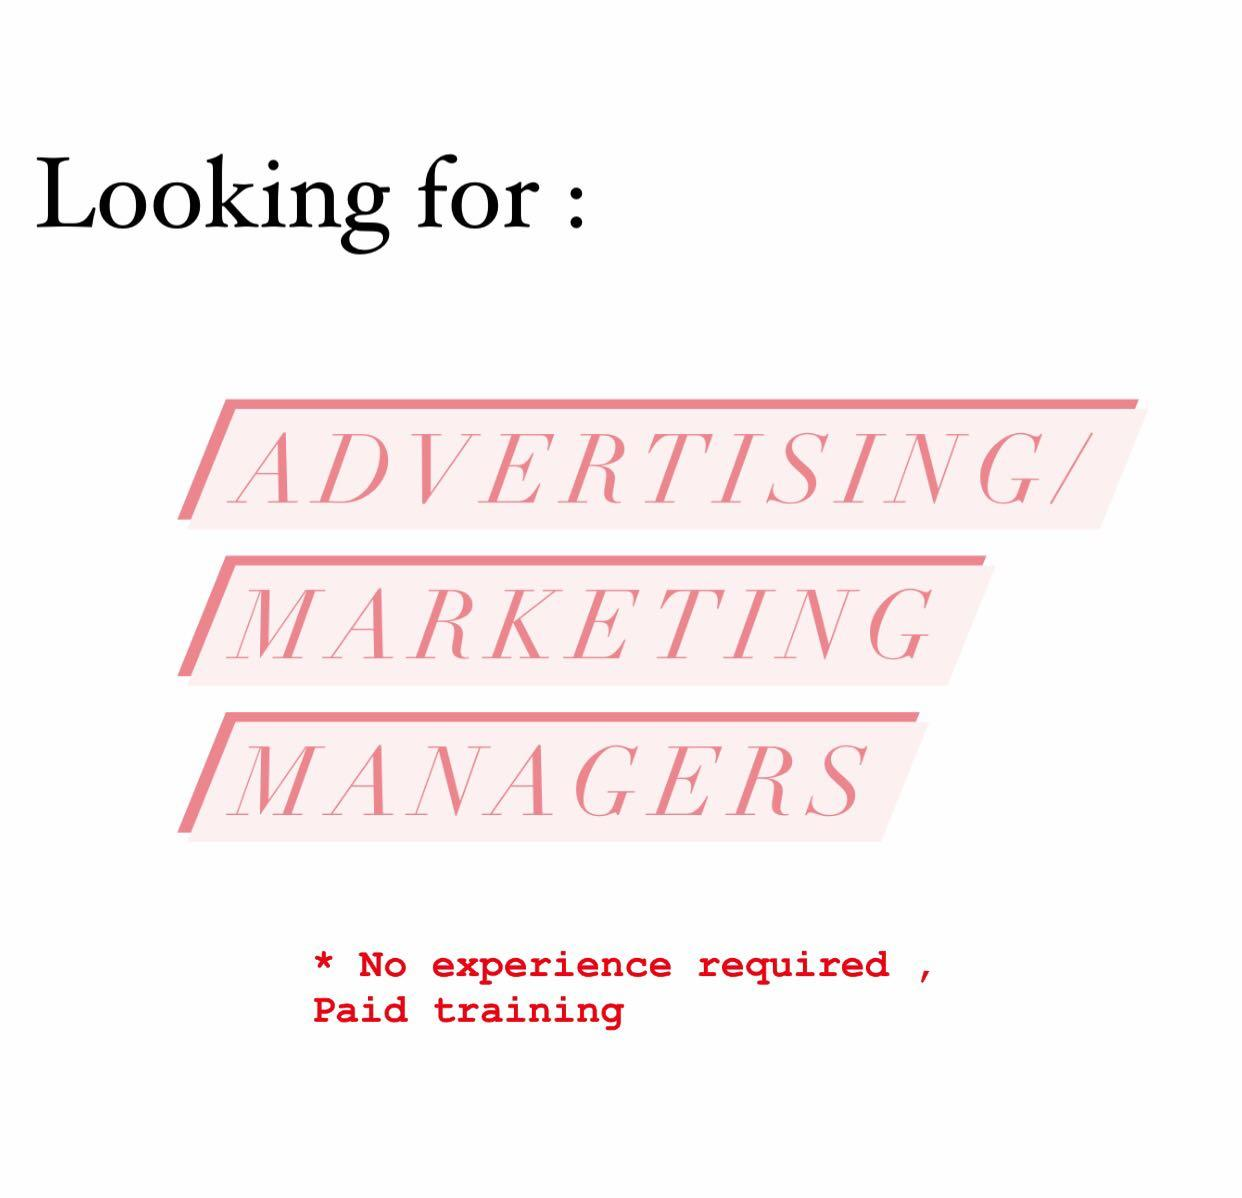 Advertising and marketing managers